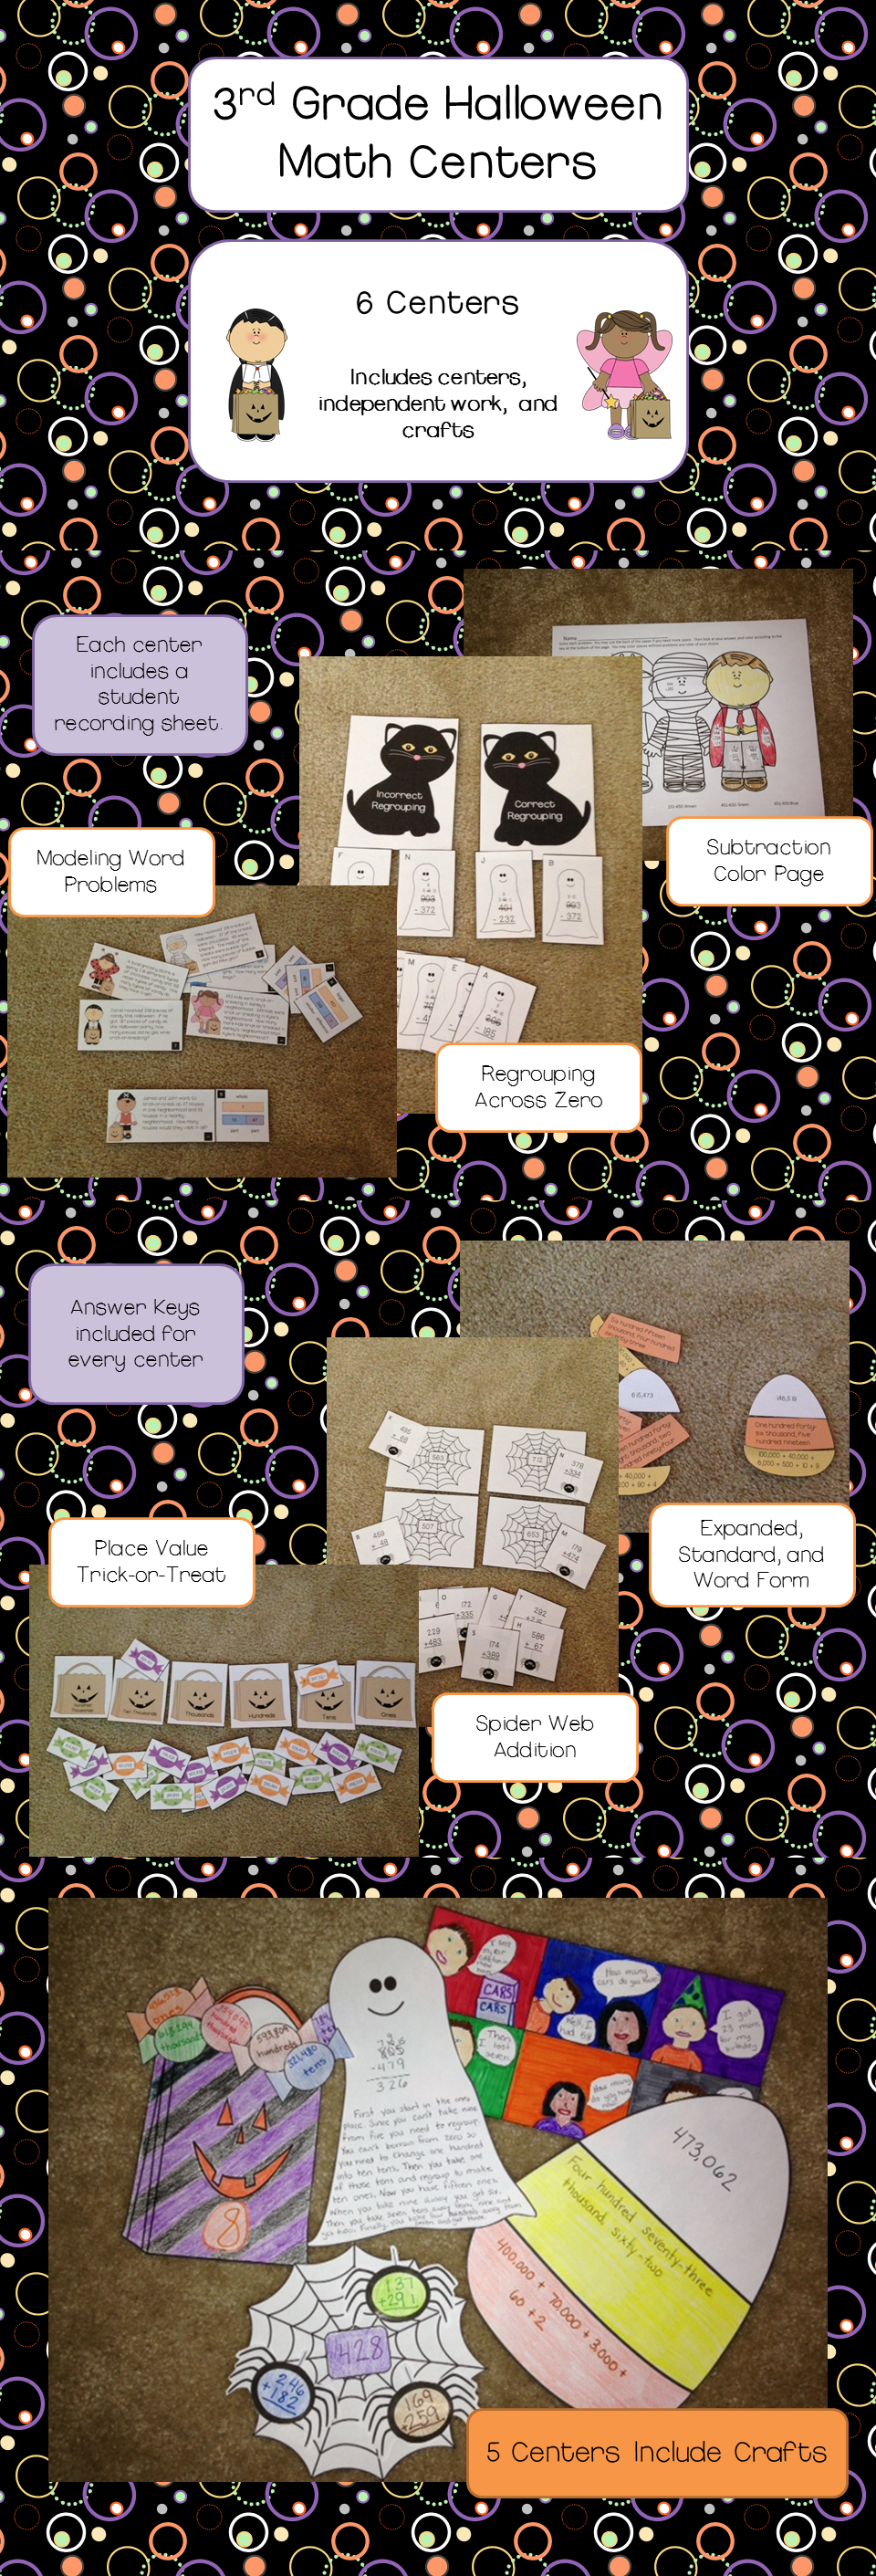 Halloween Math Centers with Crafts for 3rd Grade | Halloween math ...